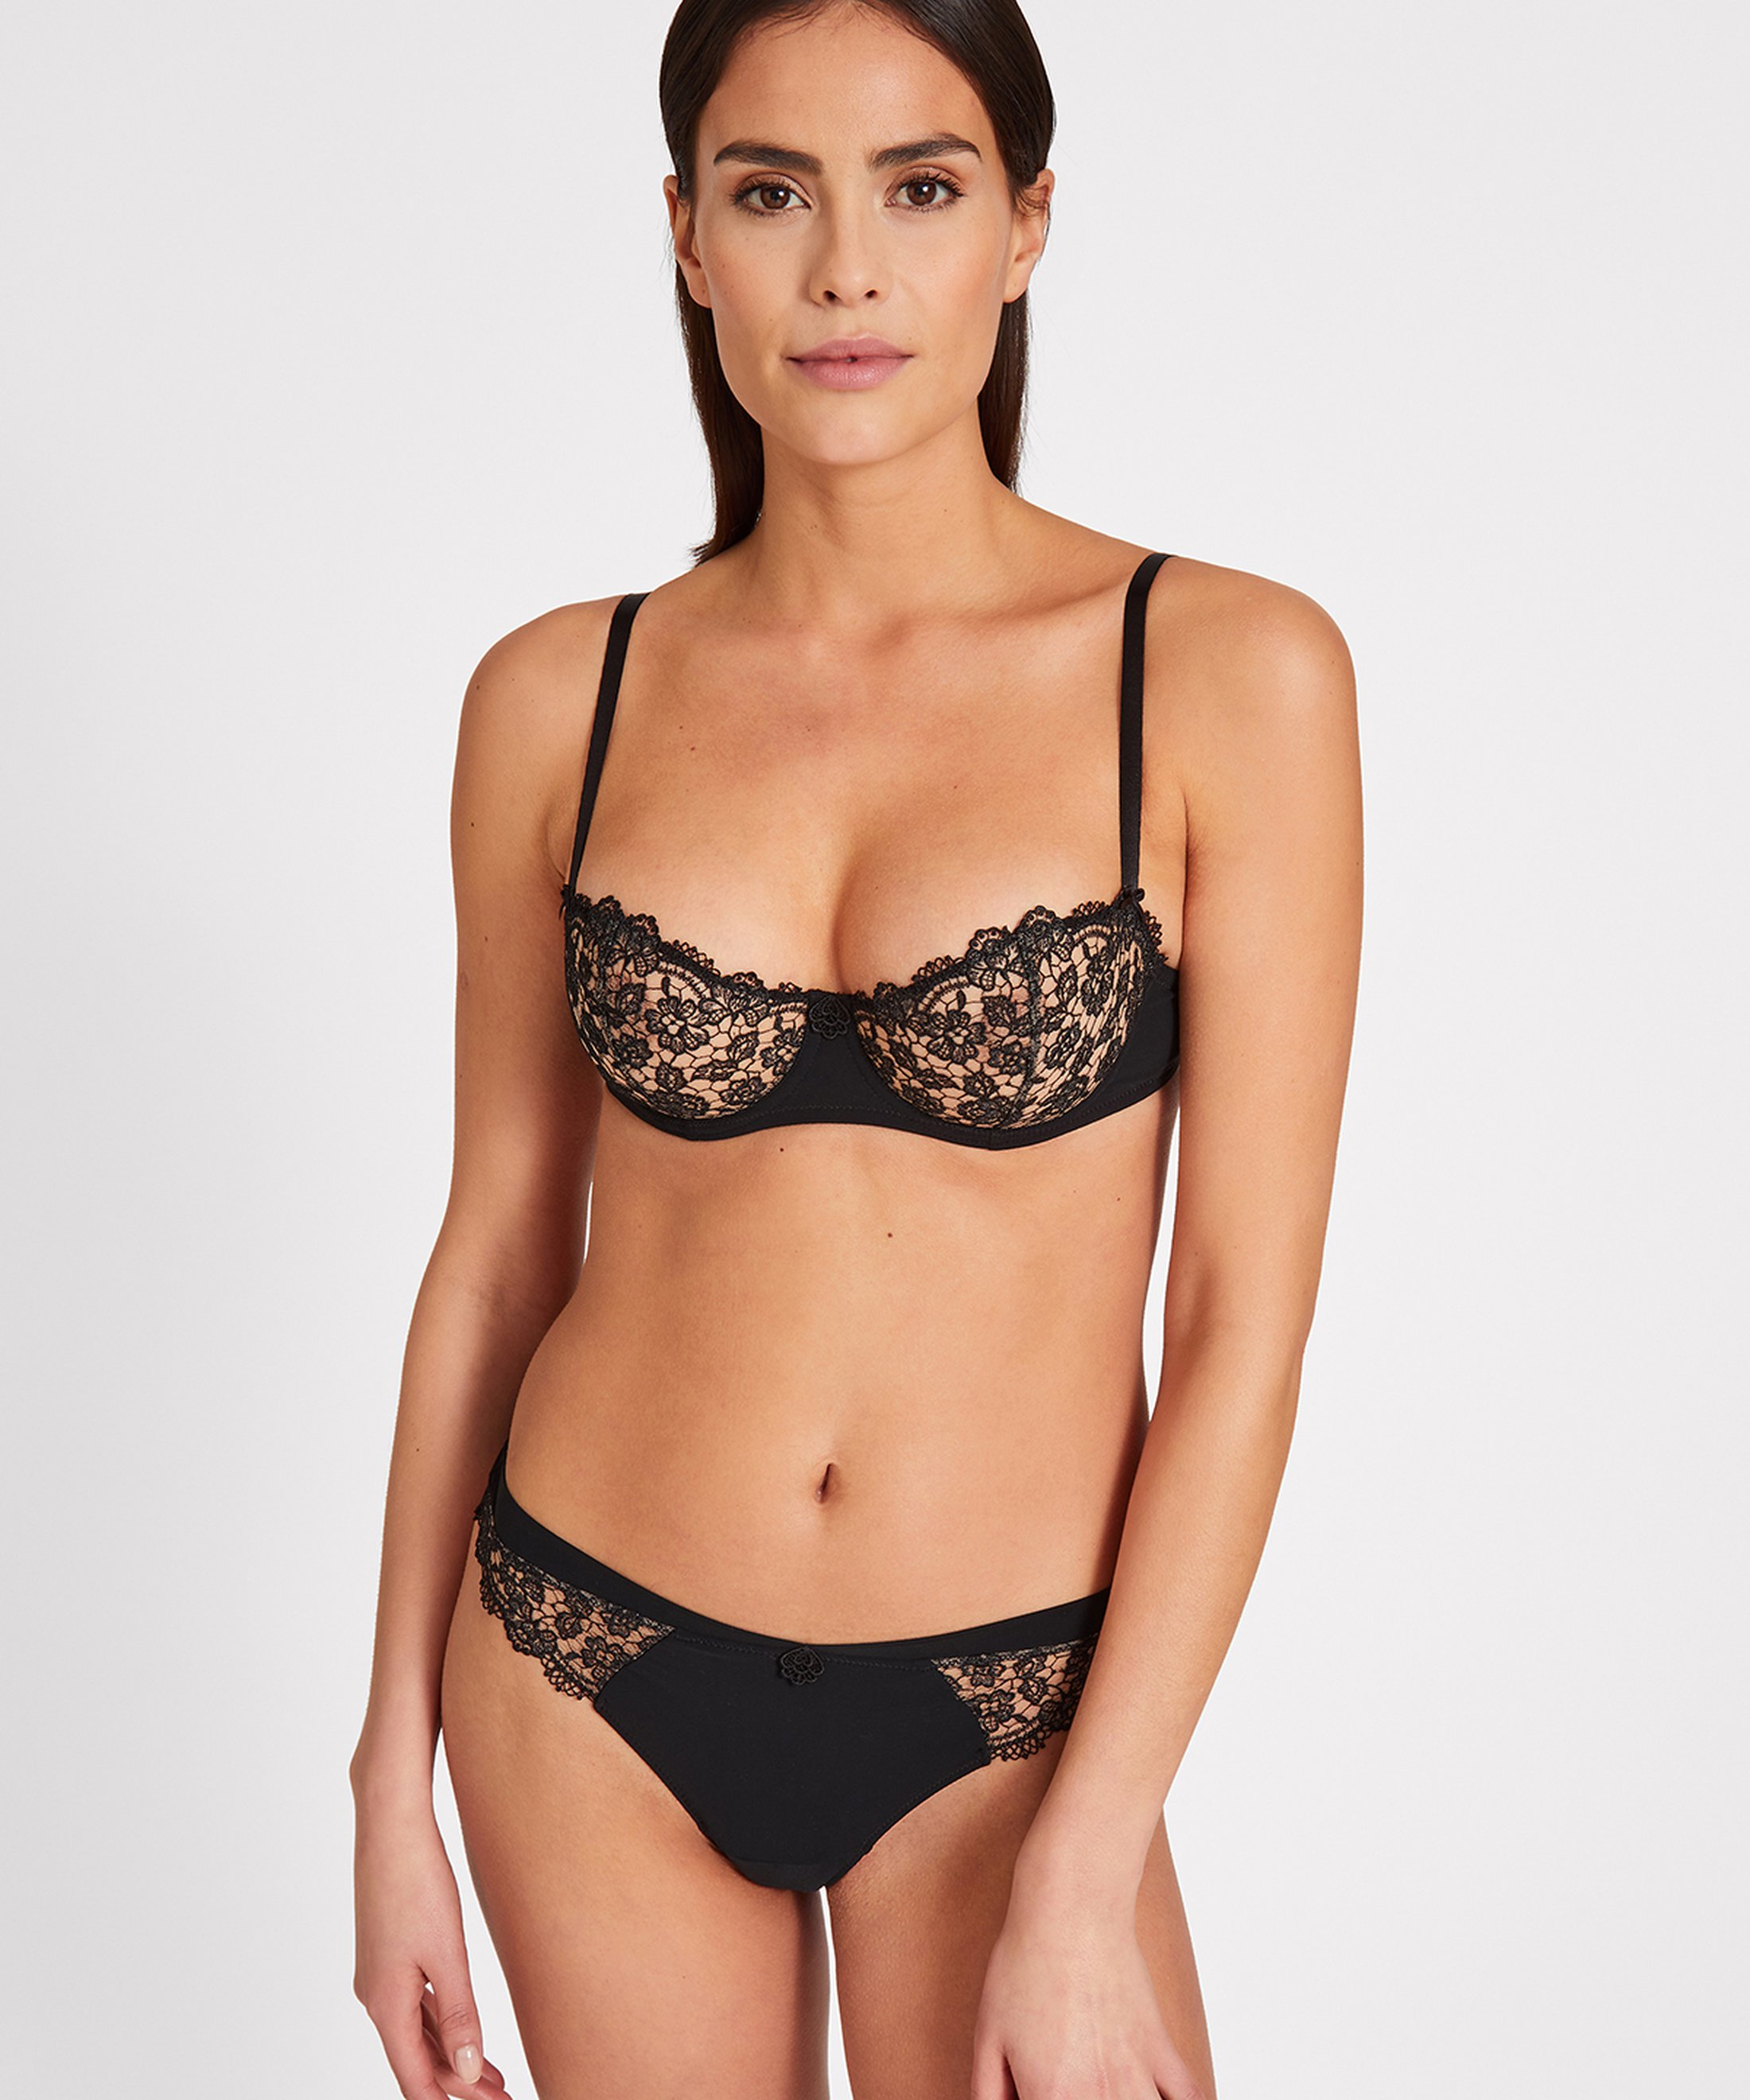 SECRET DE CHARME Tanga Black | Aubade